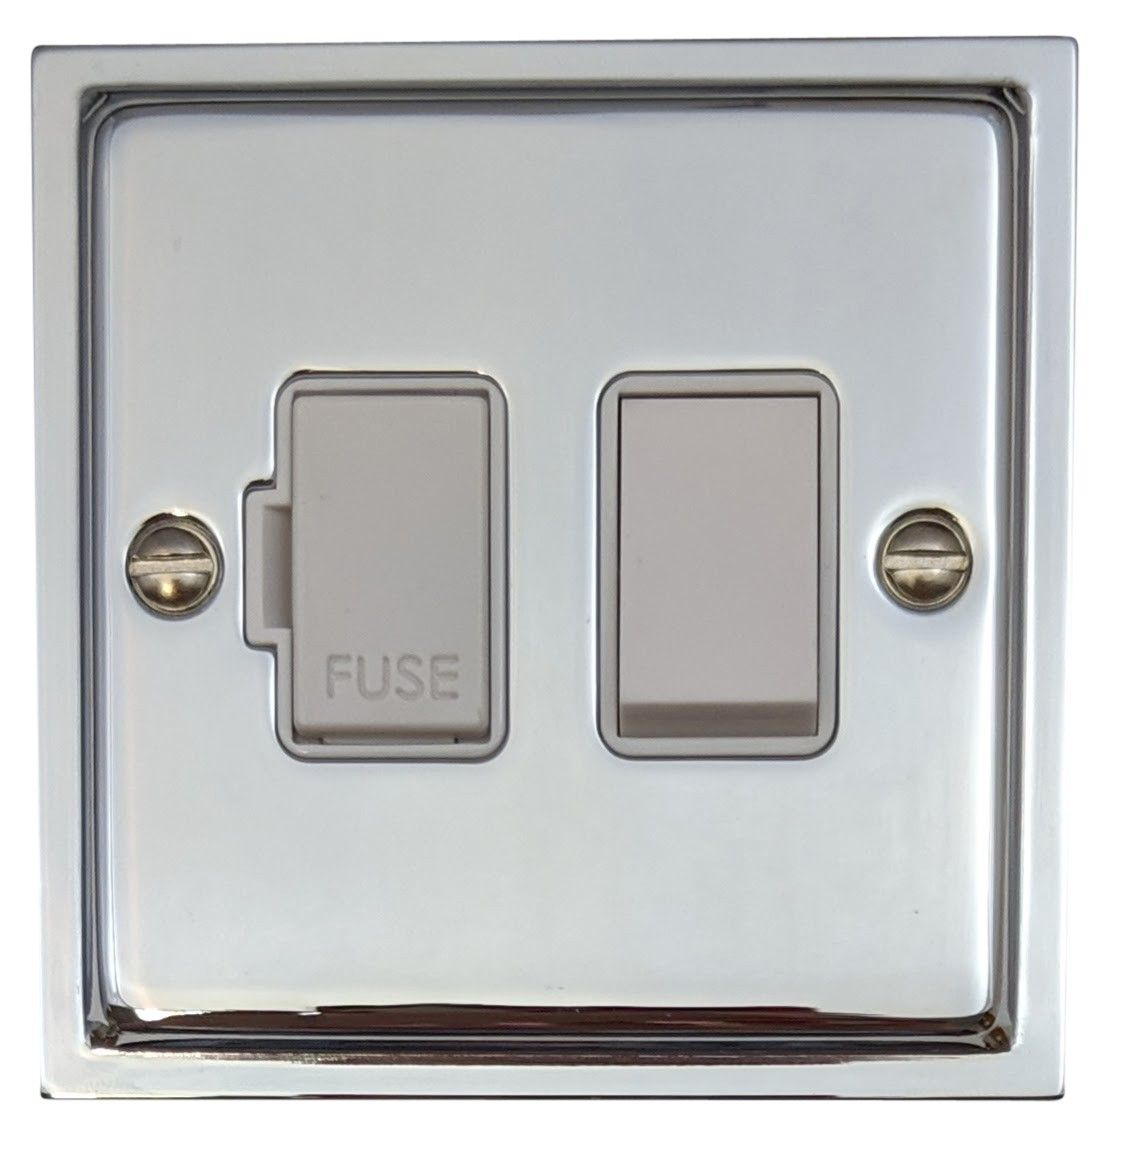 G&H HC57W Highline Plate Polished Chrome 1 Gang Fused Spur 13A Switched